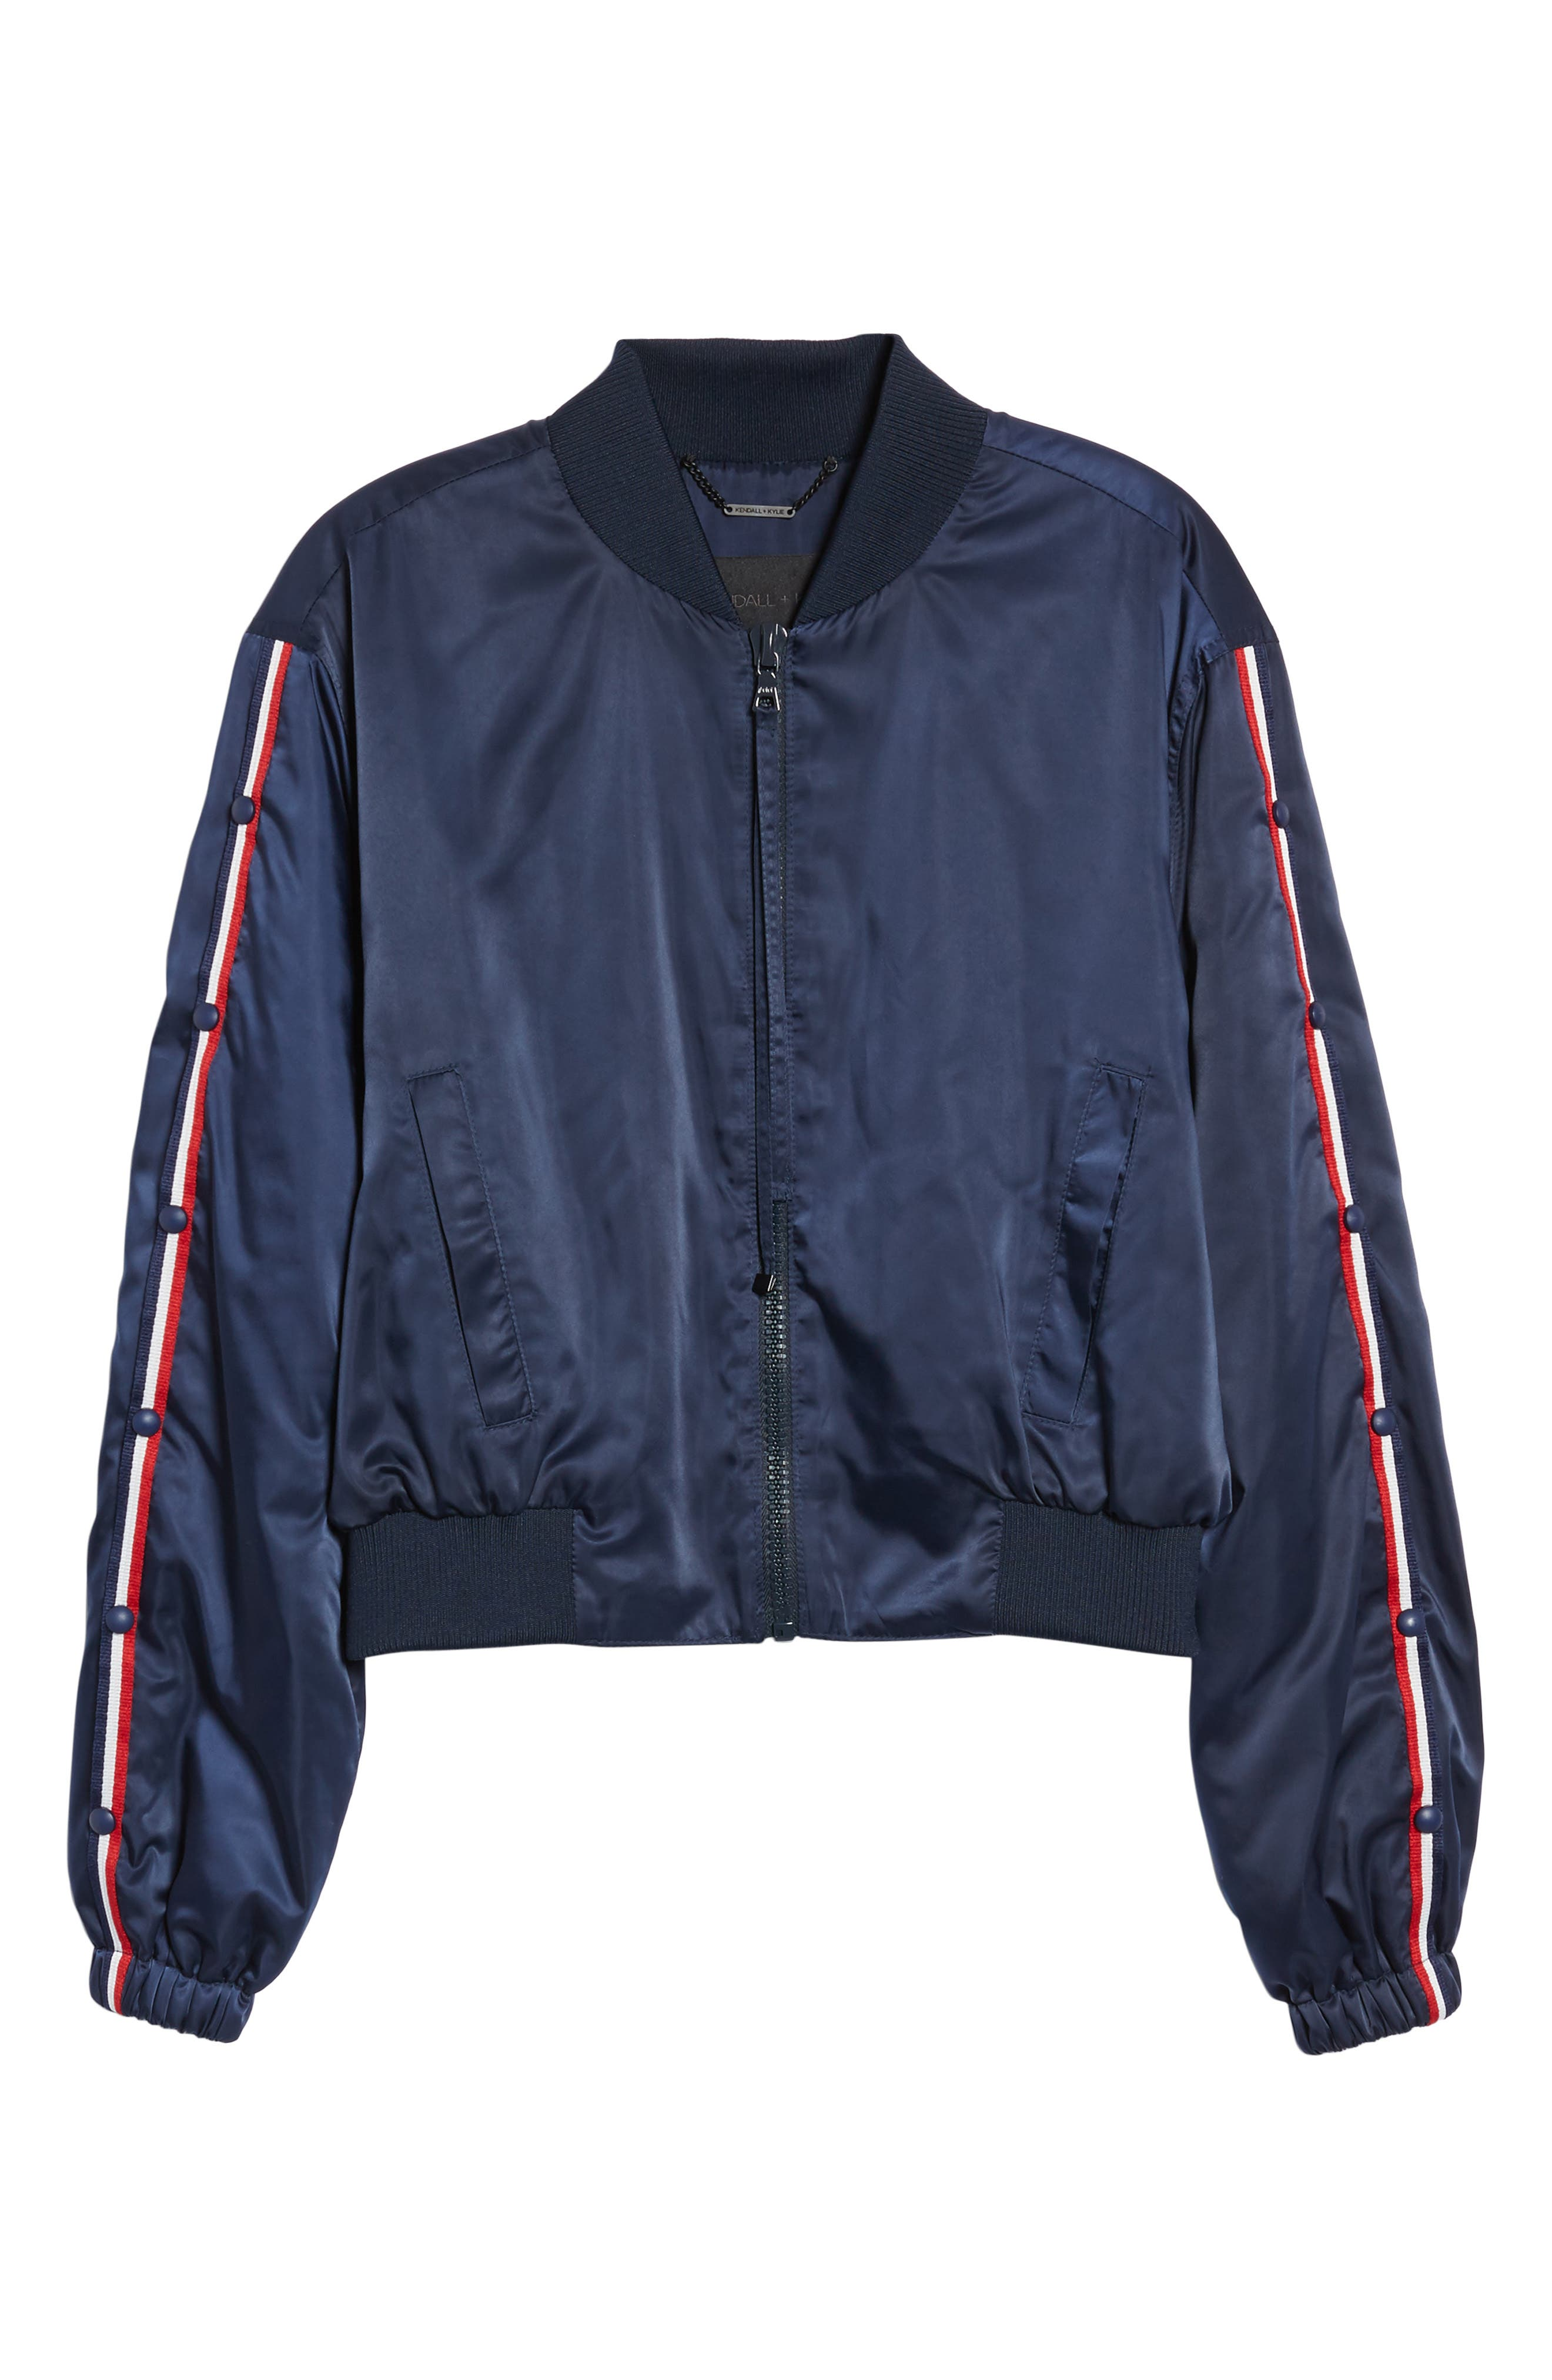 Bomber Jacket,                             Alternate thumbnail 6, color,                             Navy/ Red/ White